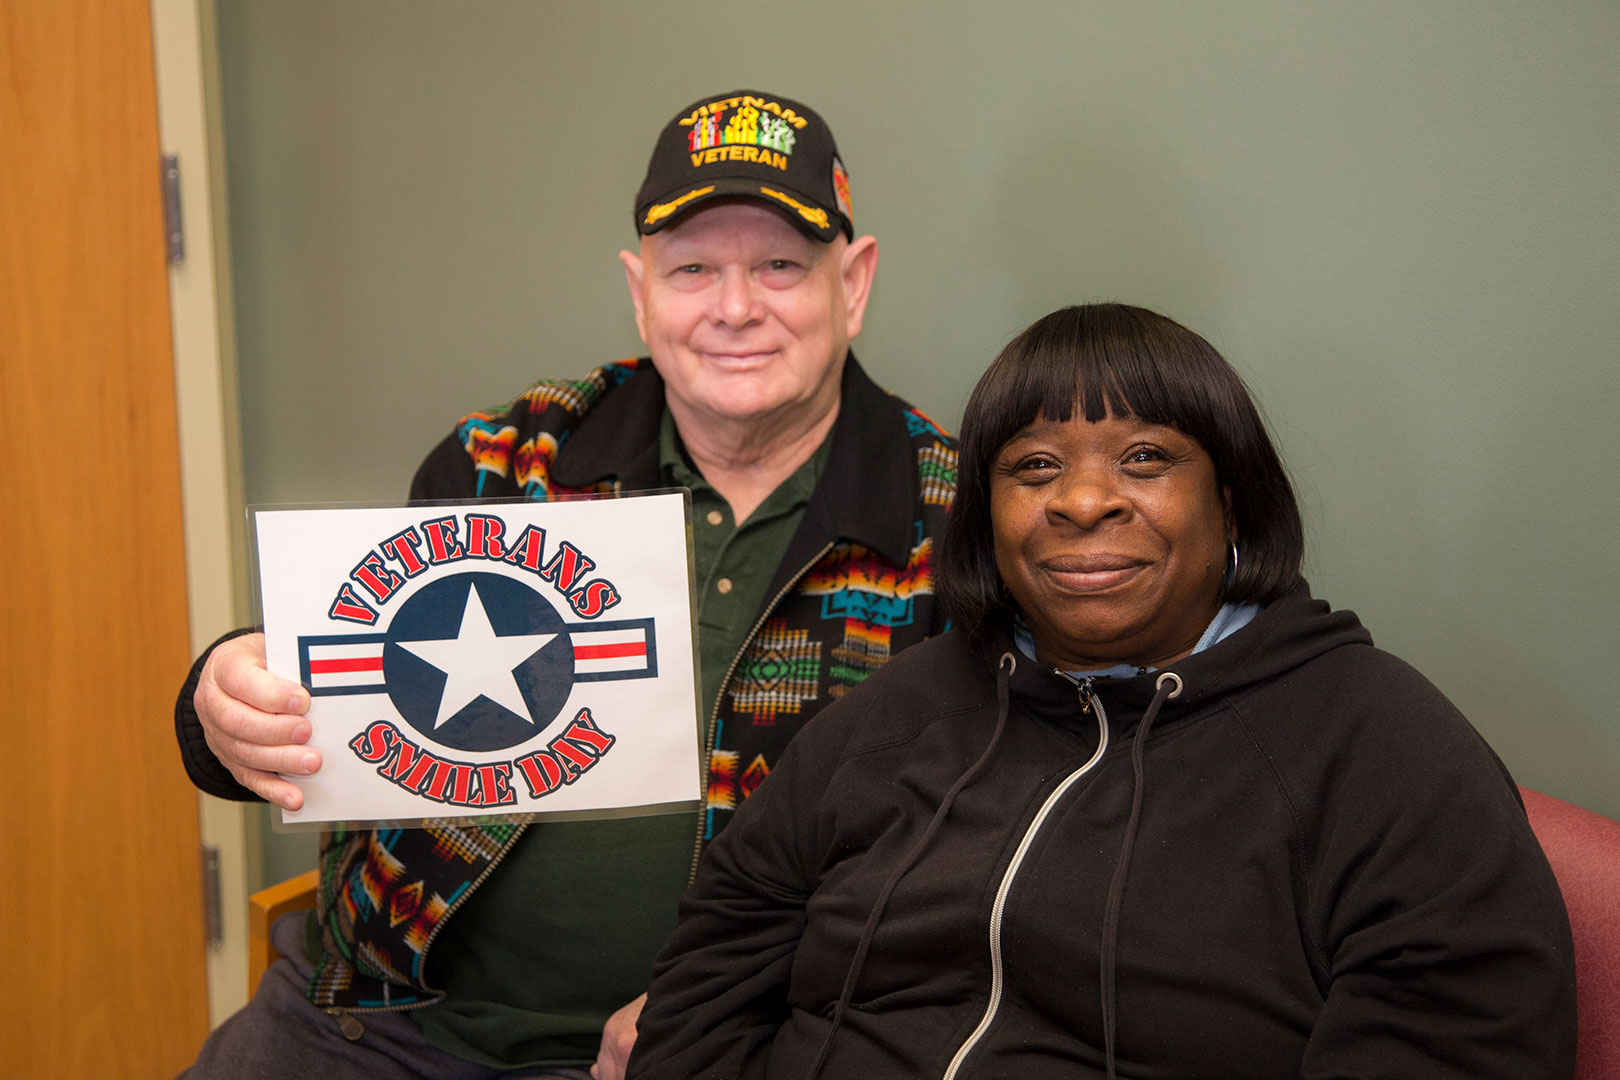 Veterans_Smile_Day_Gallery_64